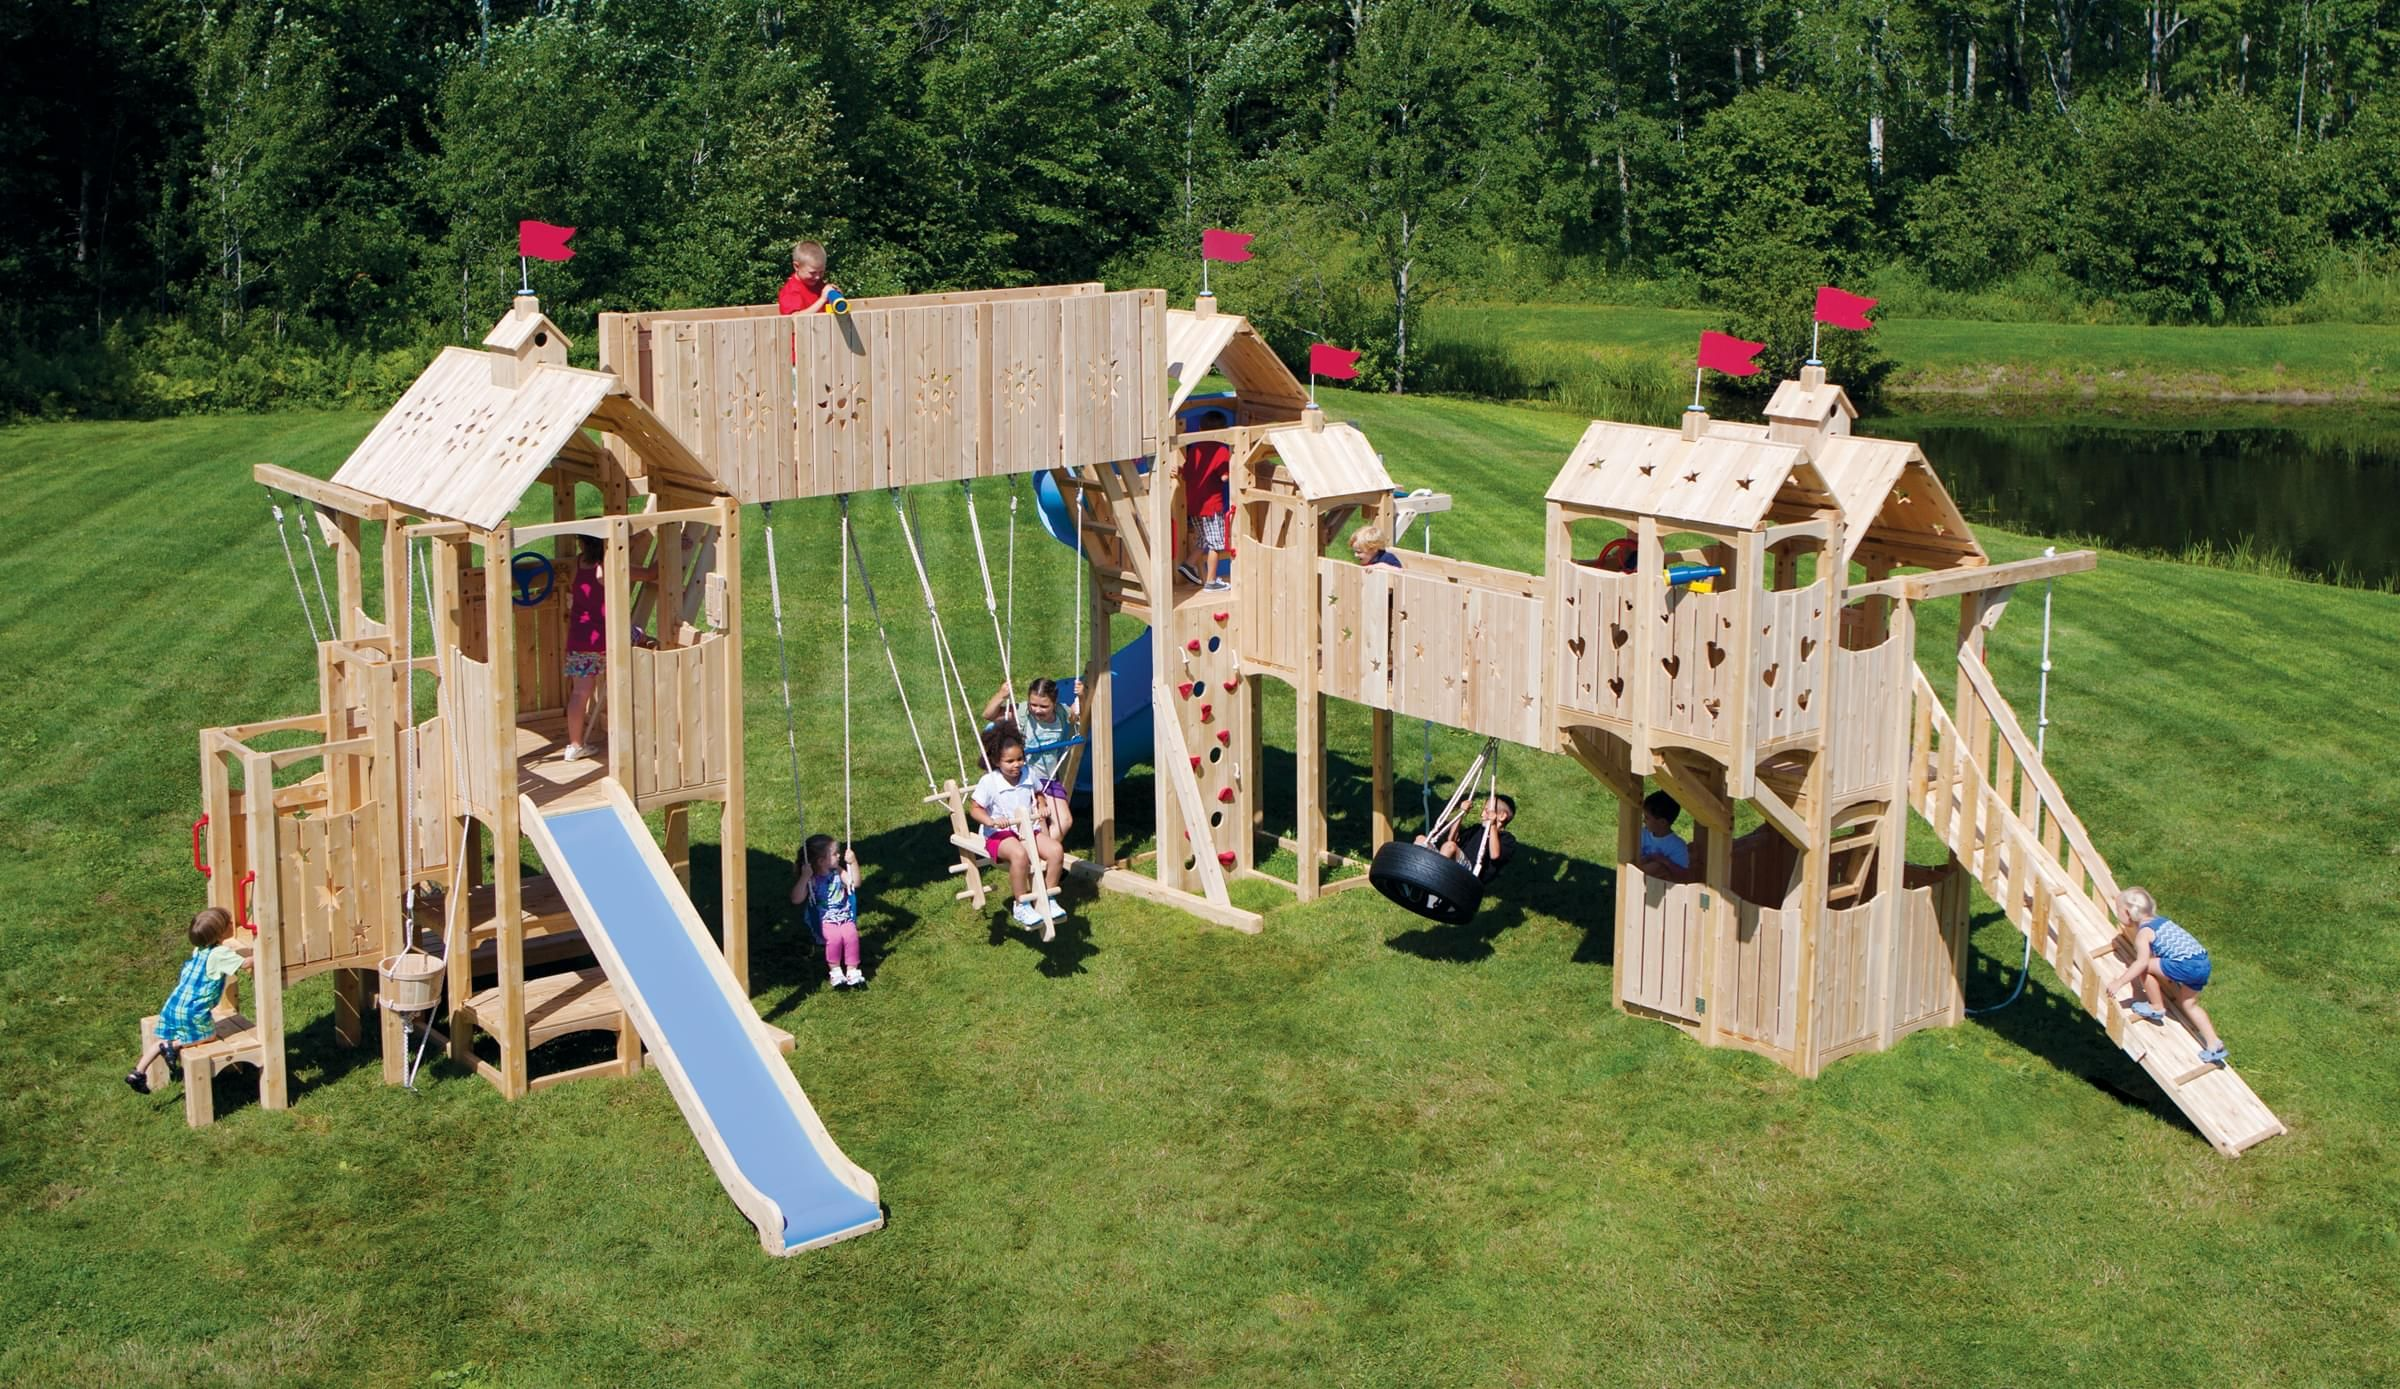 Frolic 546 Wooden Swing Set And Outdoor Playset Cedarworks Playsets Kids Play Set Playset Outdoor Outdoor Fun For Kids